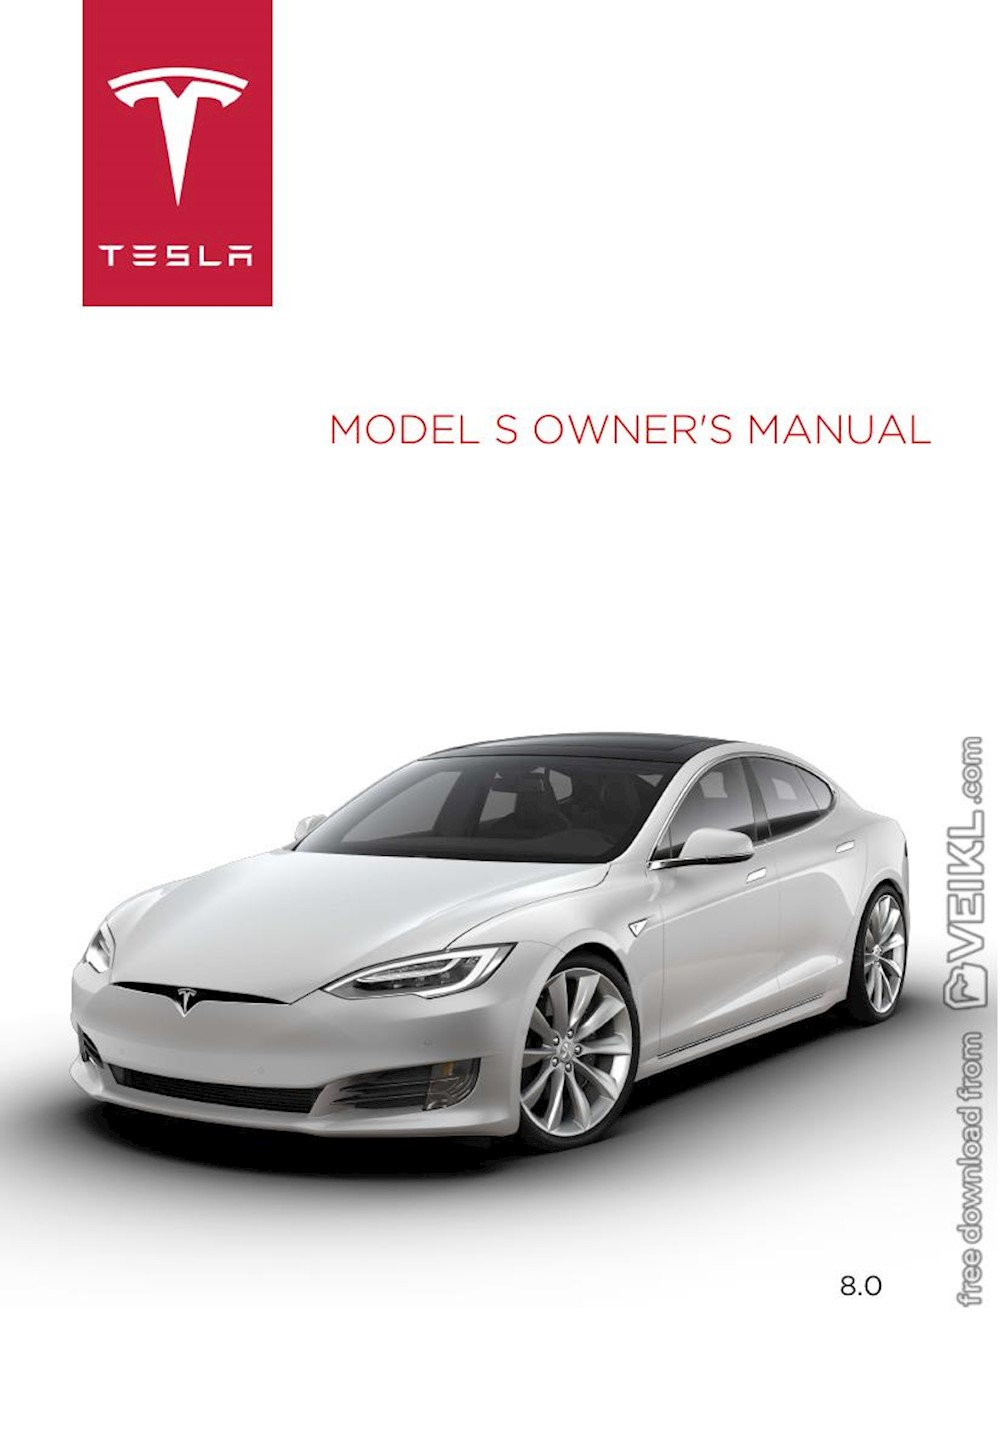 Tesla model s owners manual